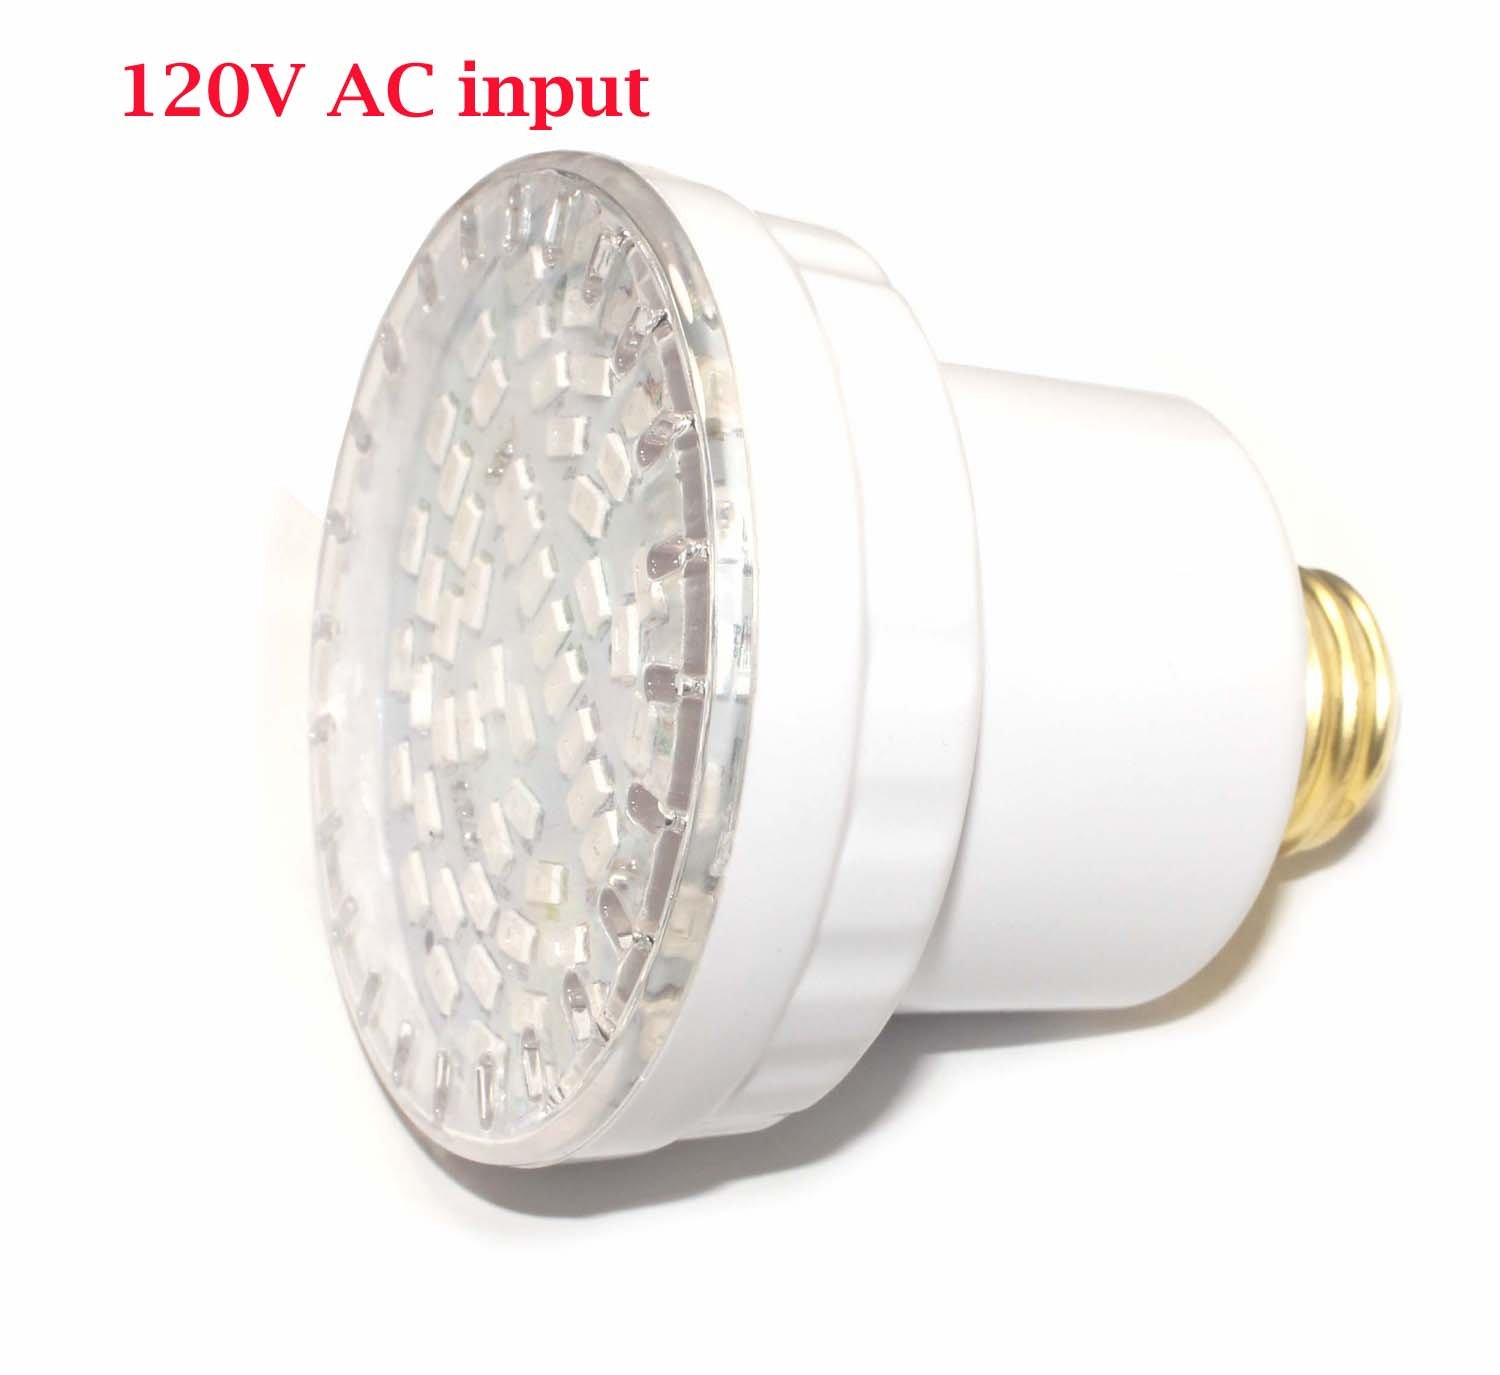 LAMPAOUS Inground LED Pool Lights Spa Lights Bulb Pure White Color (Spa Bulb, 120VAC)